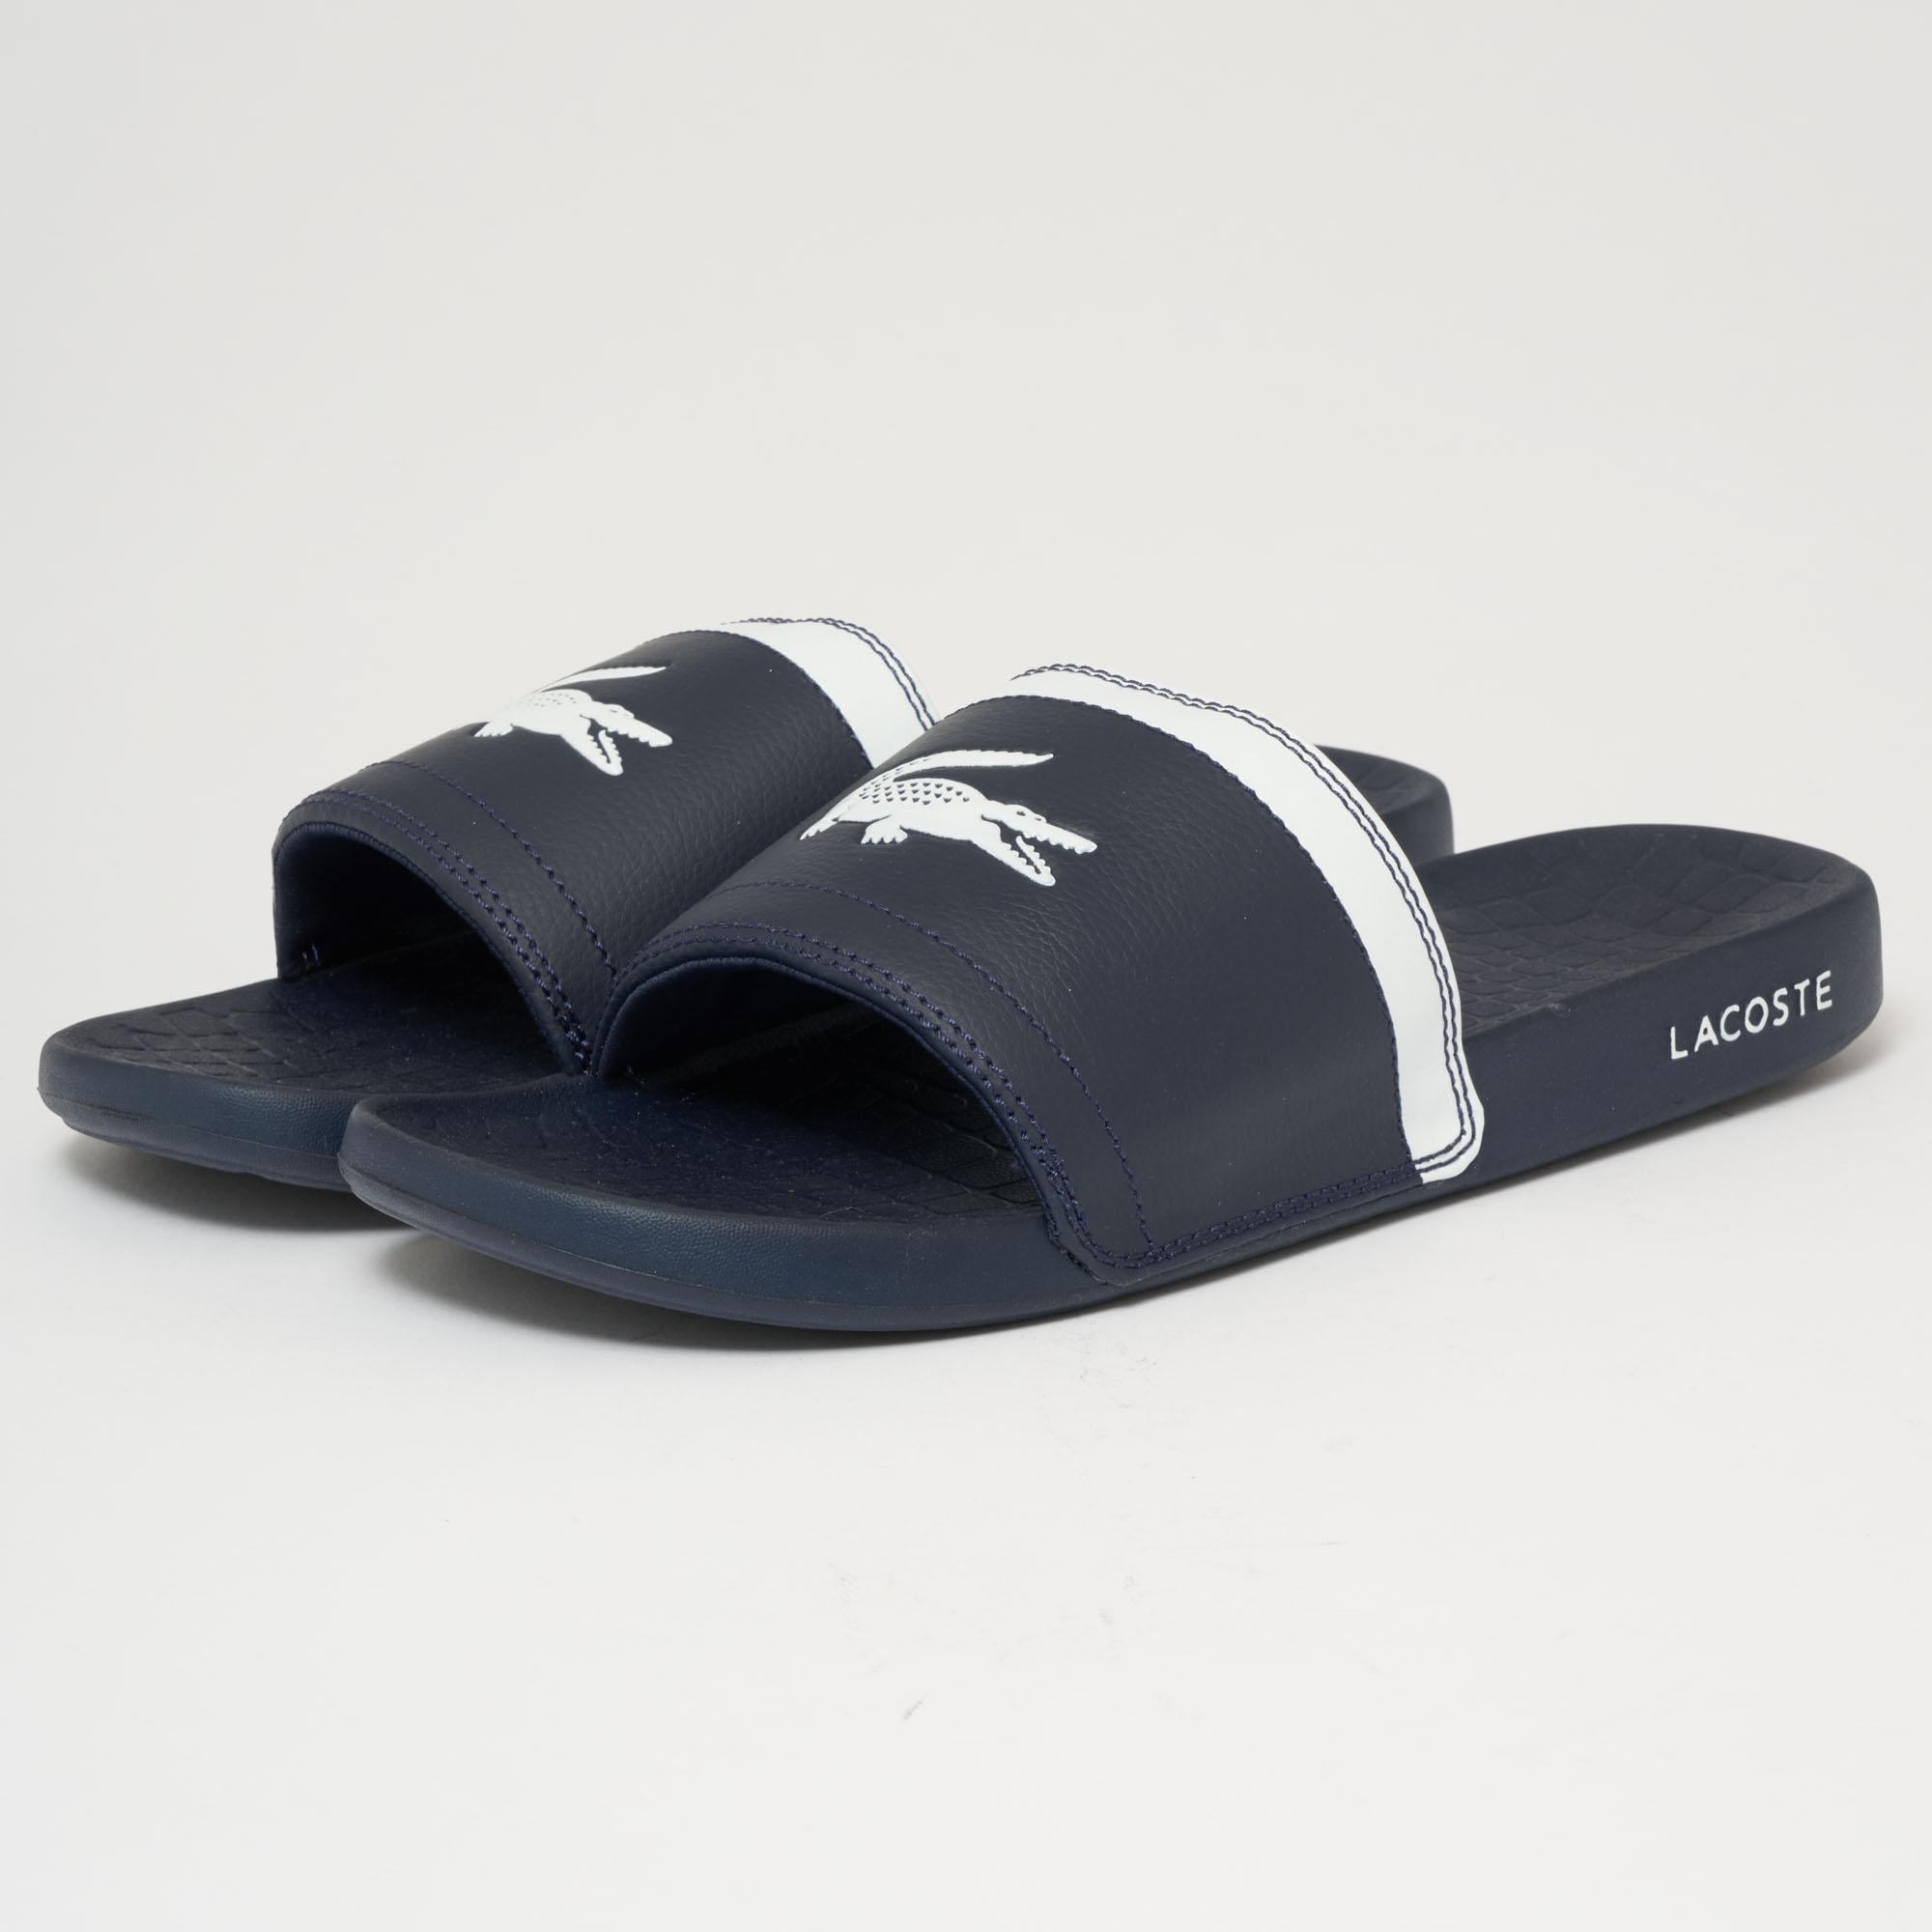 ab7e2f602f82 Lacoste Fraisier Slides - Navy   White in Blue for Men - Lyst